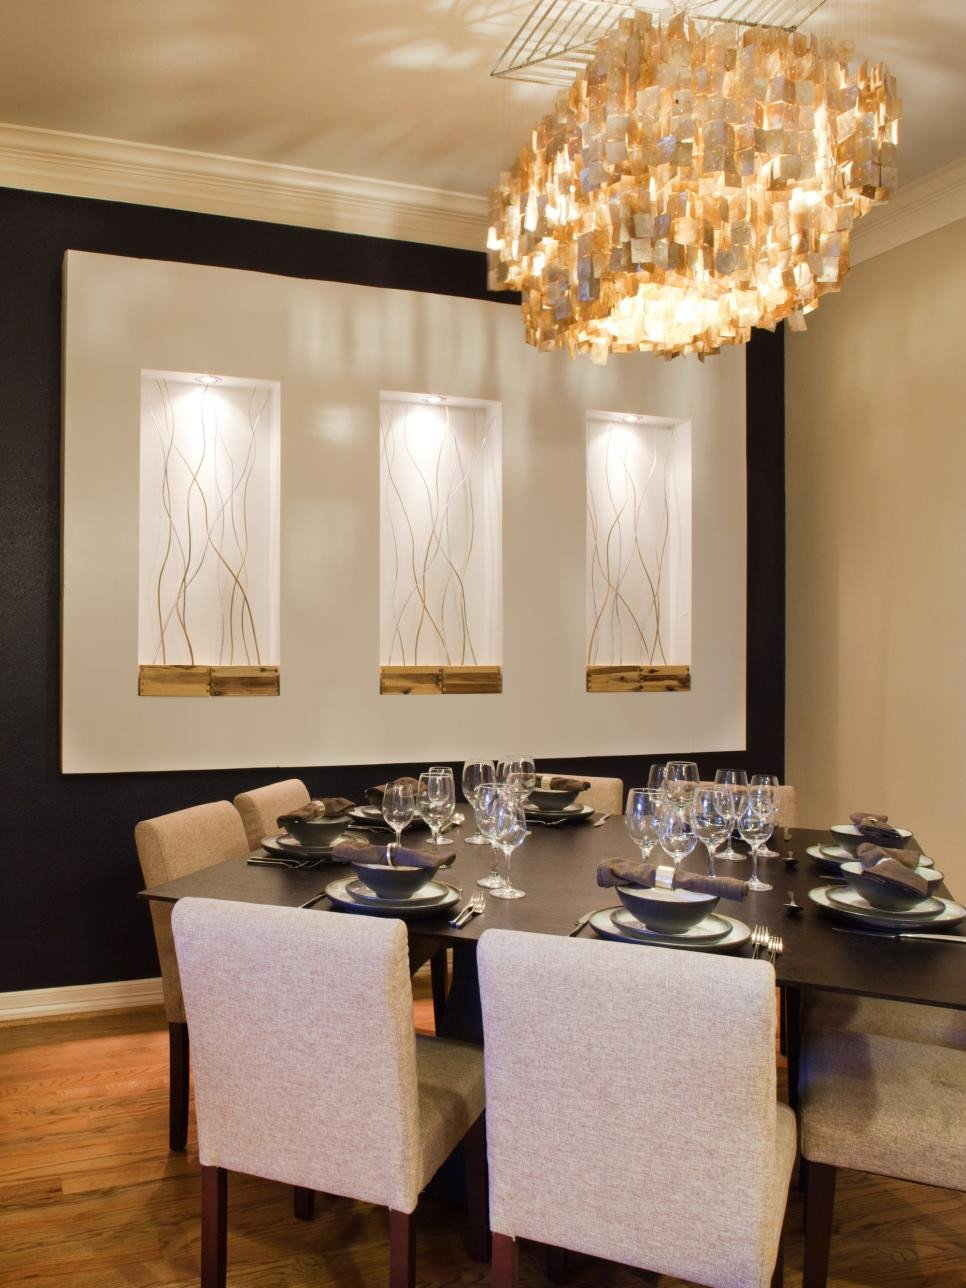 Dining Room Wall Decor Pictures Luxury 15 Dining Room Decorating Ideas